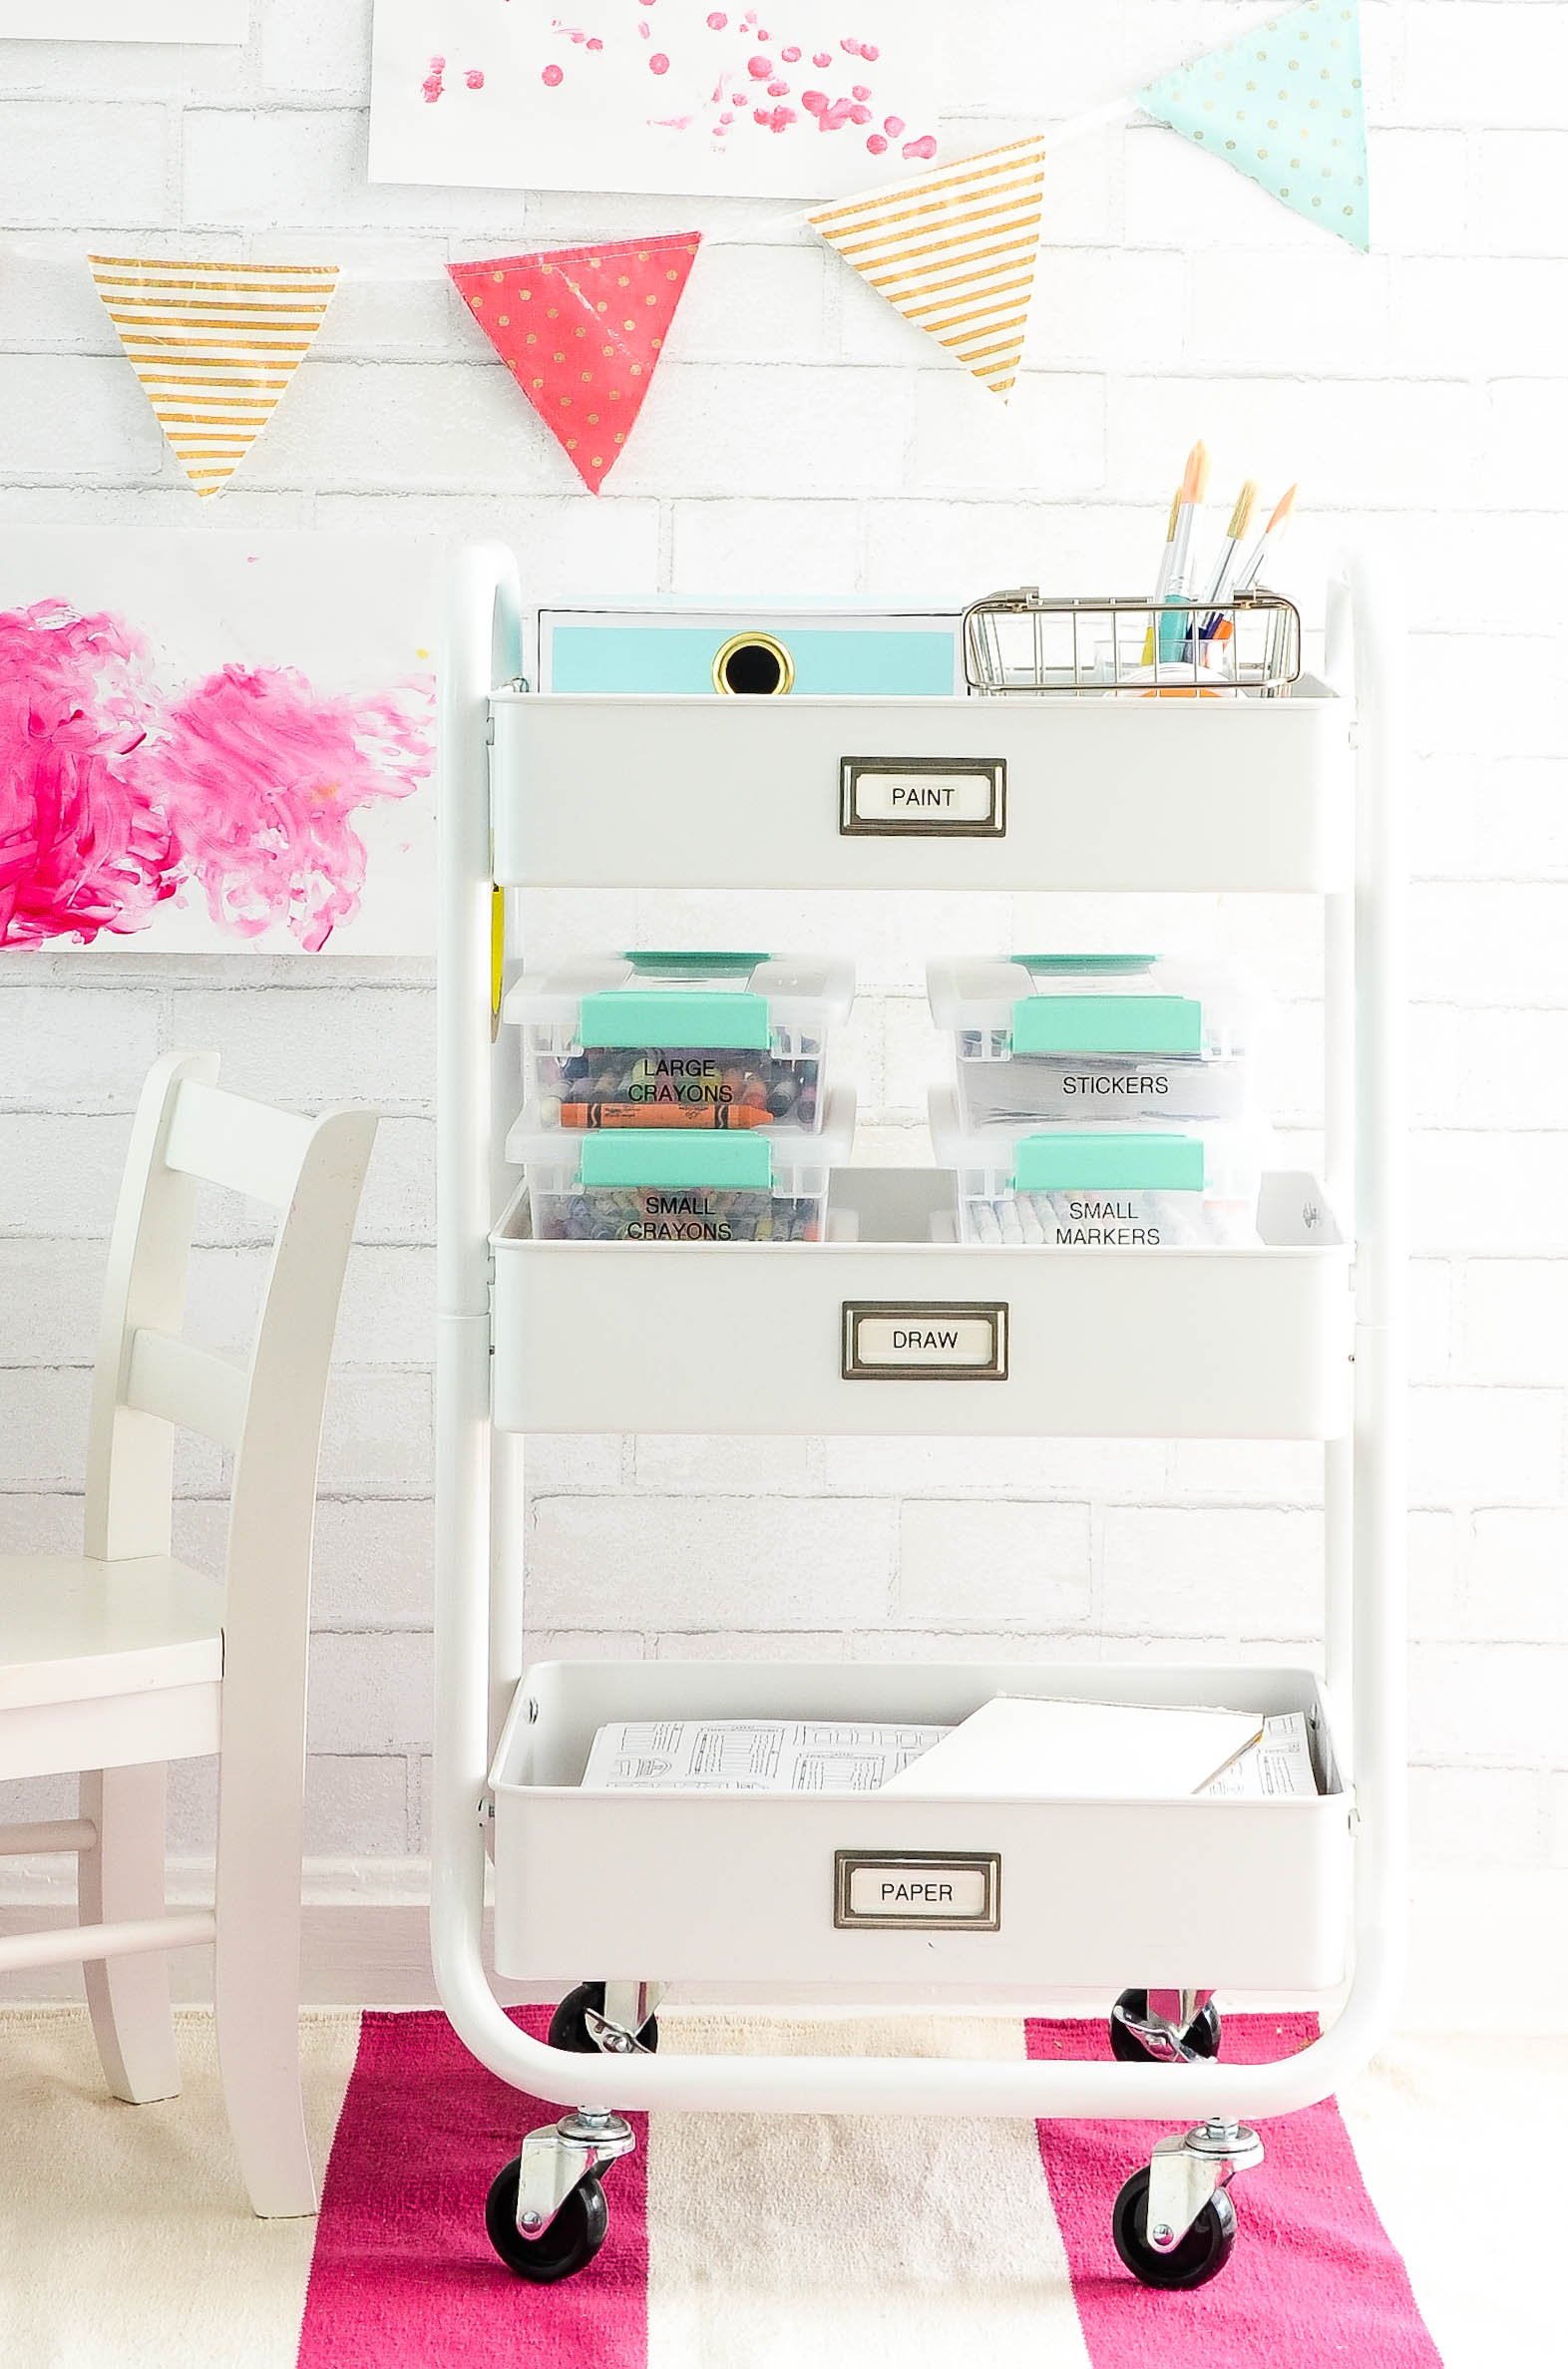 The perfect solution to organize those art supplies!